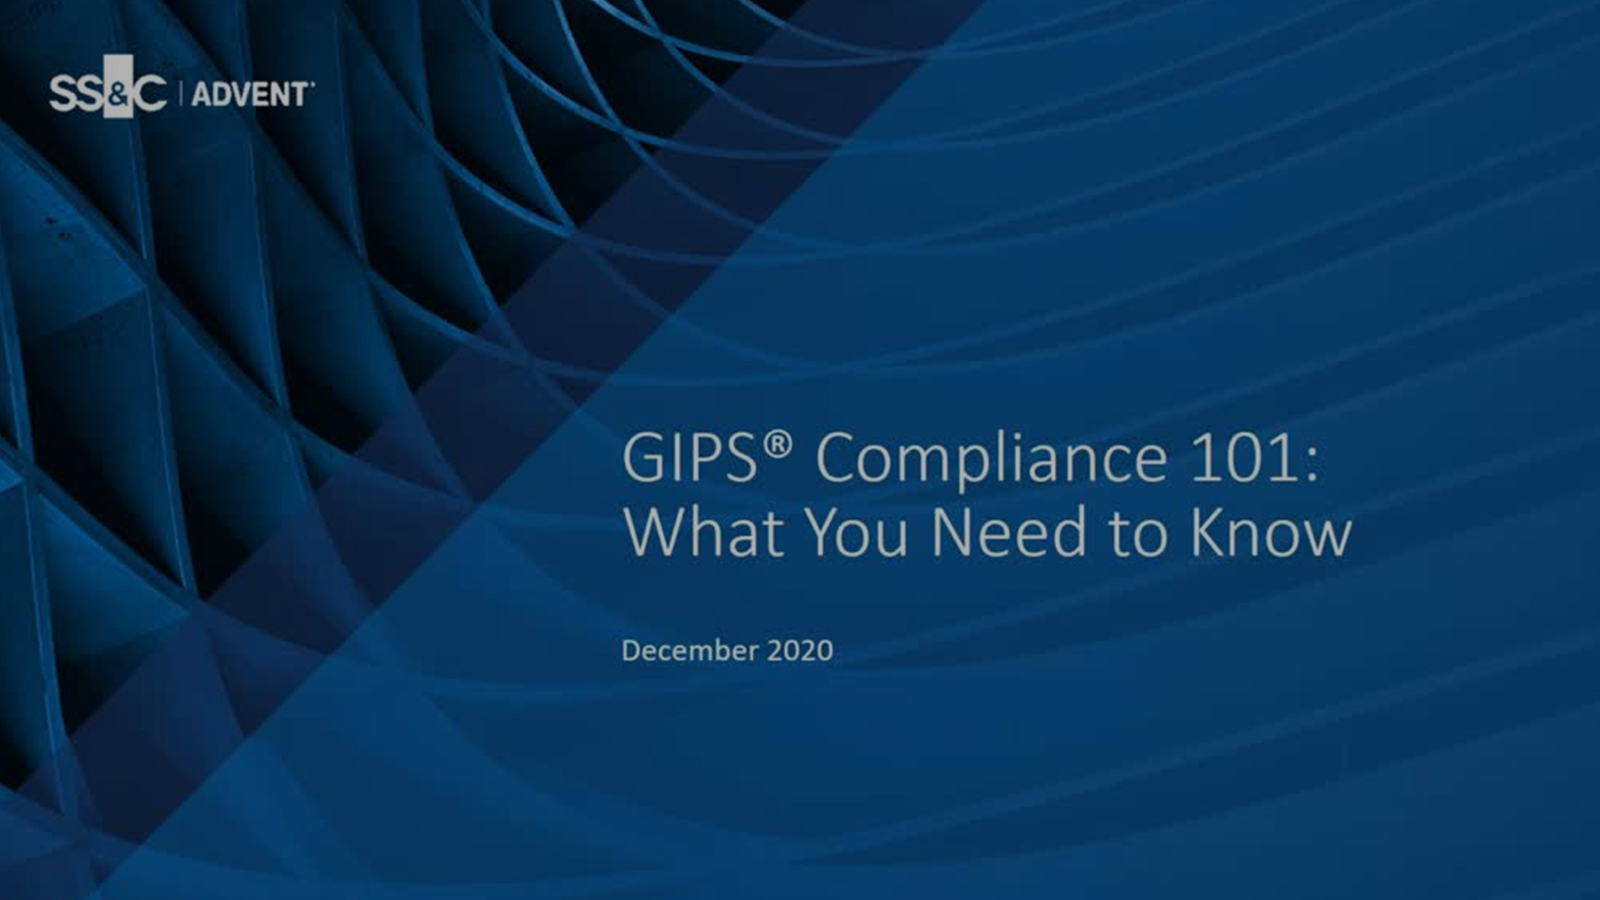 poster image for GIPS® Compliance 101: What You Need to Know